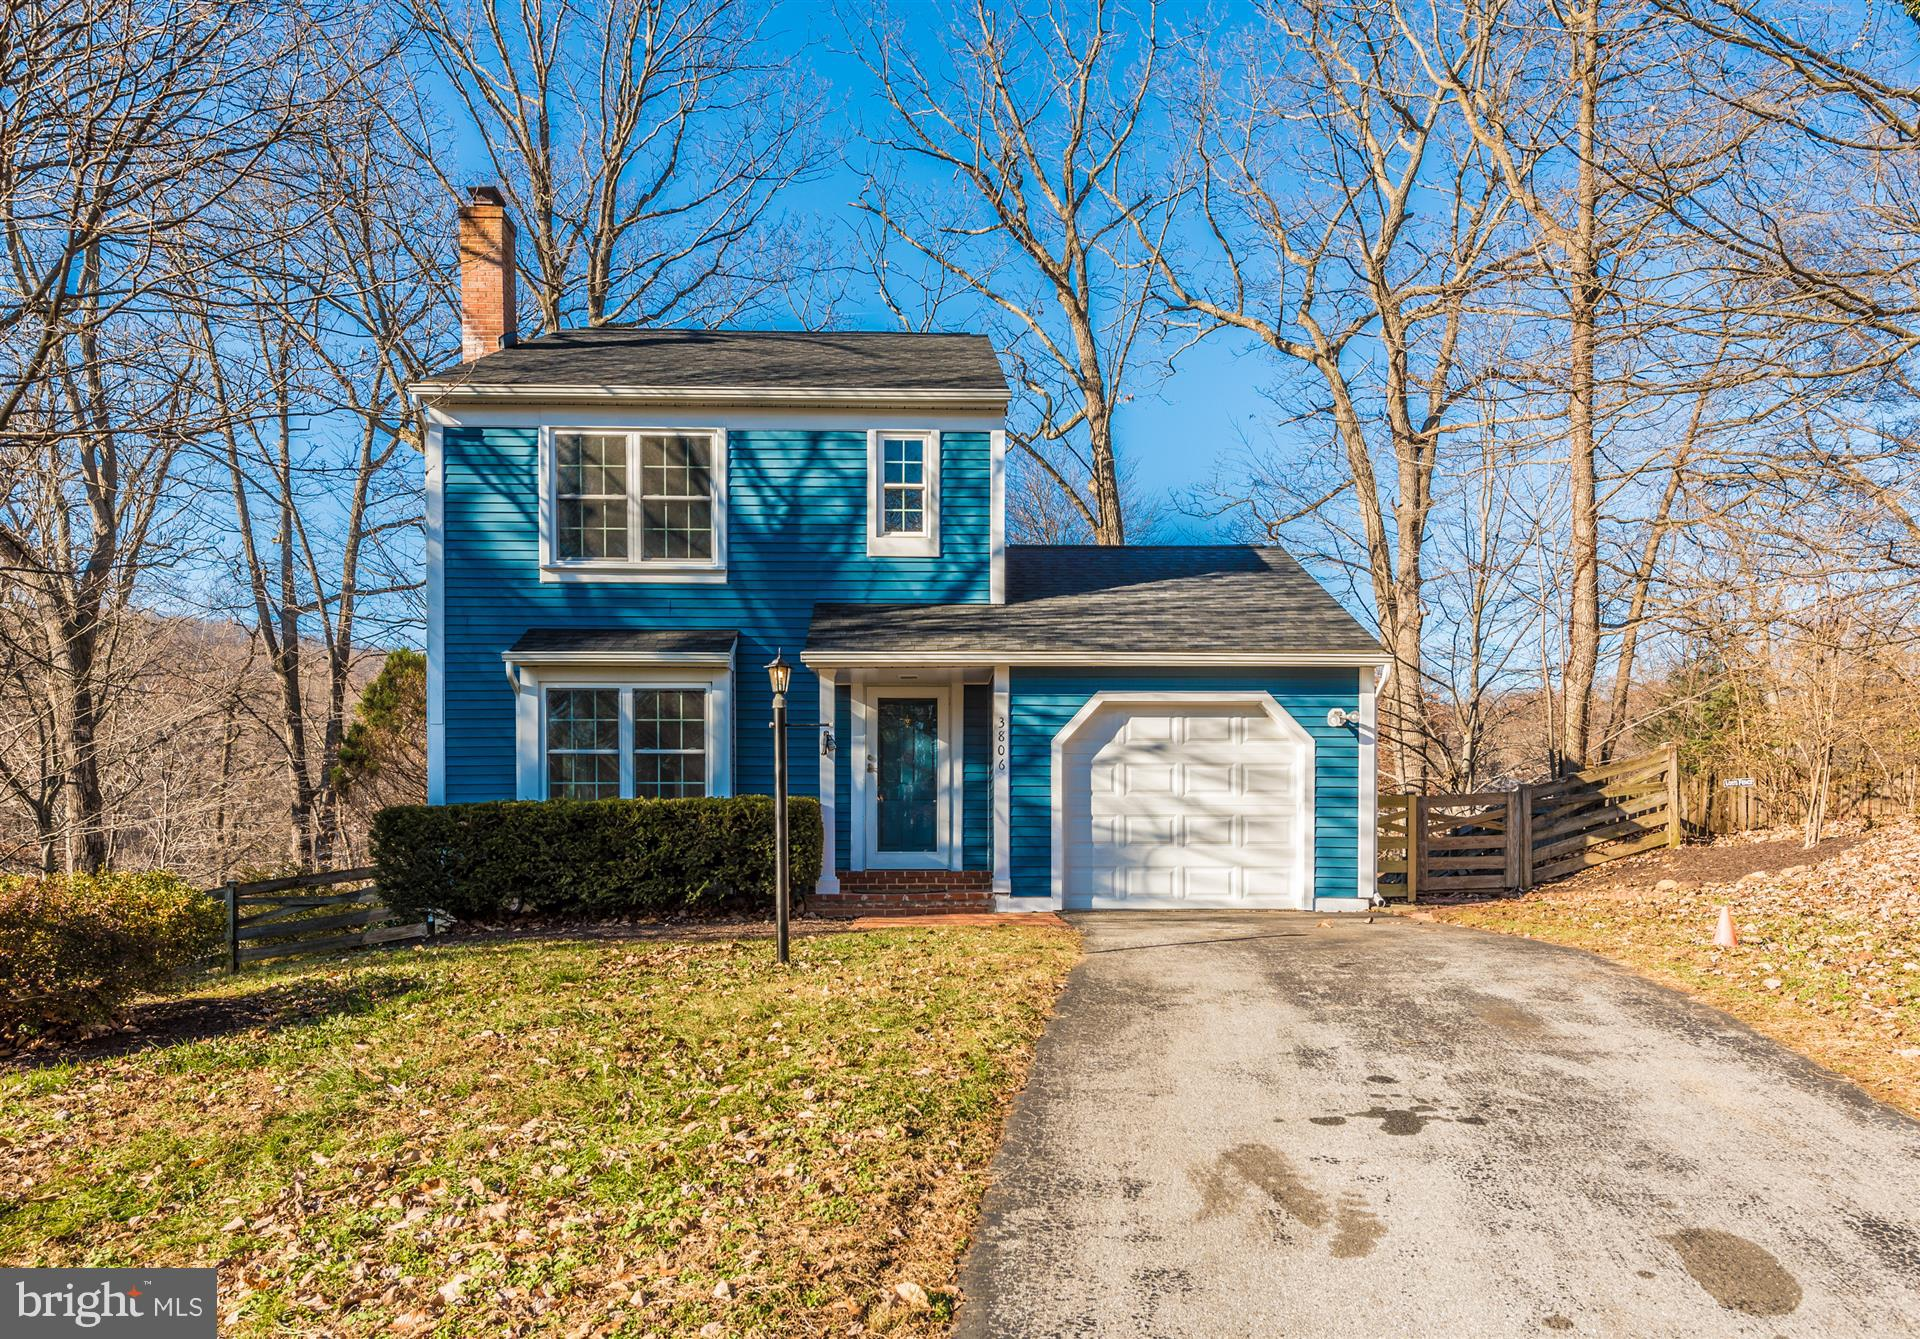 3806 PIPPINS PLACE, POINT OF ROCKS, MD 21777